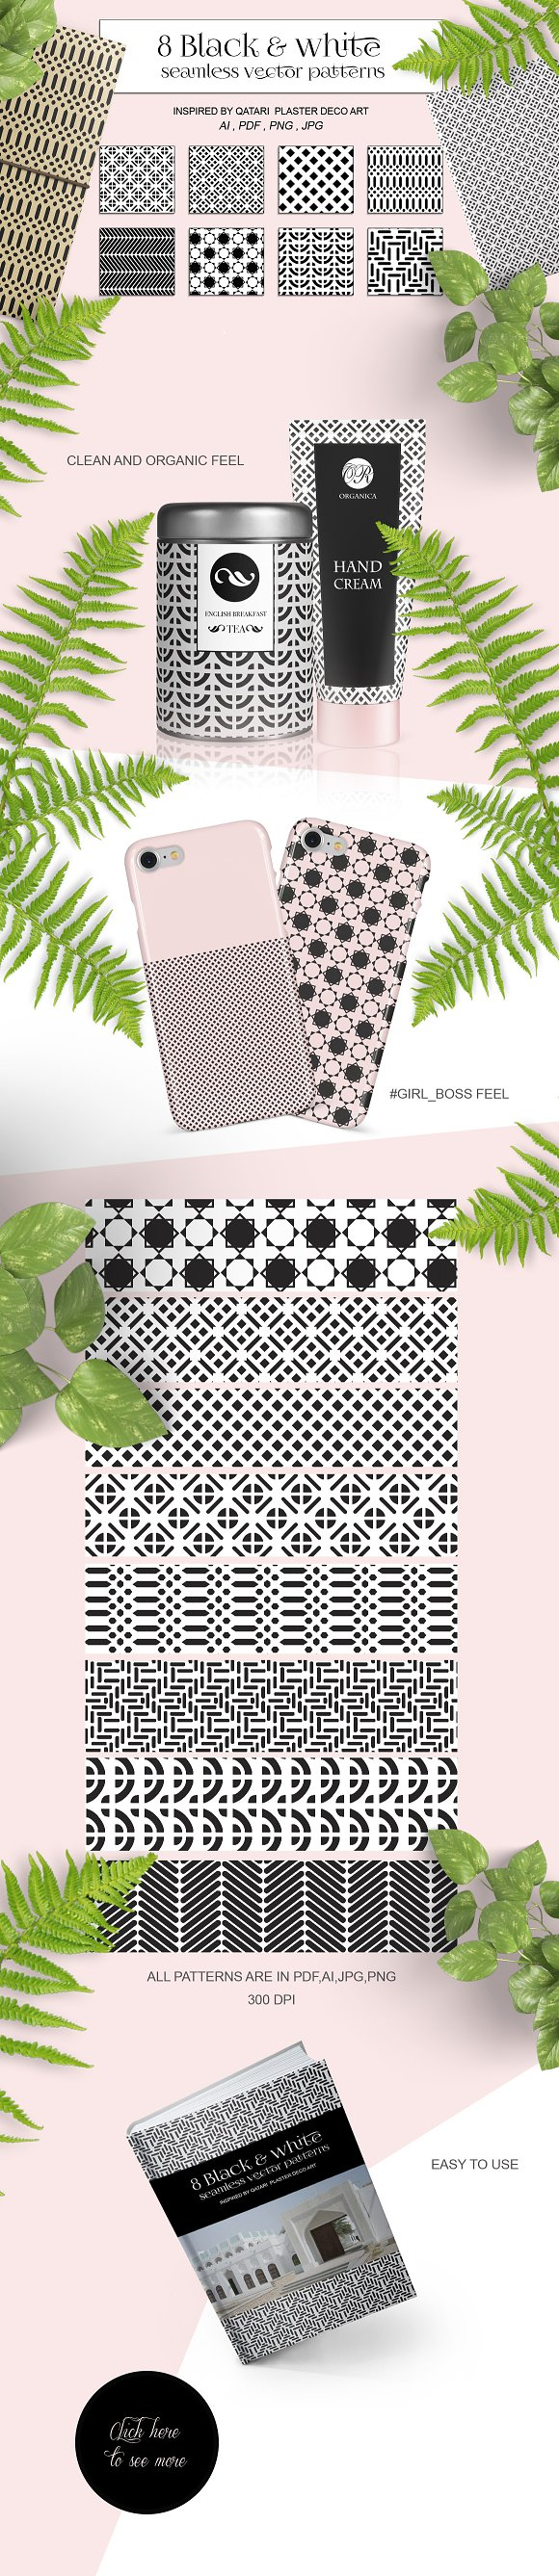 Black White Seamless Vector Patterns